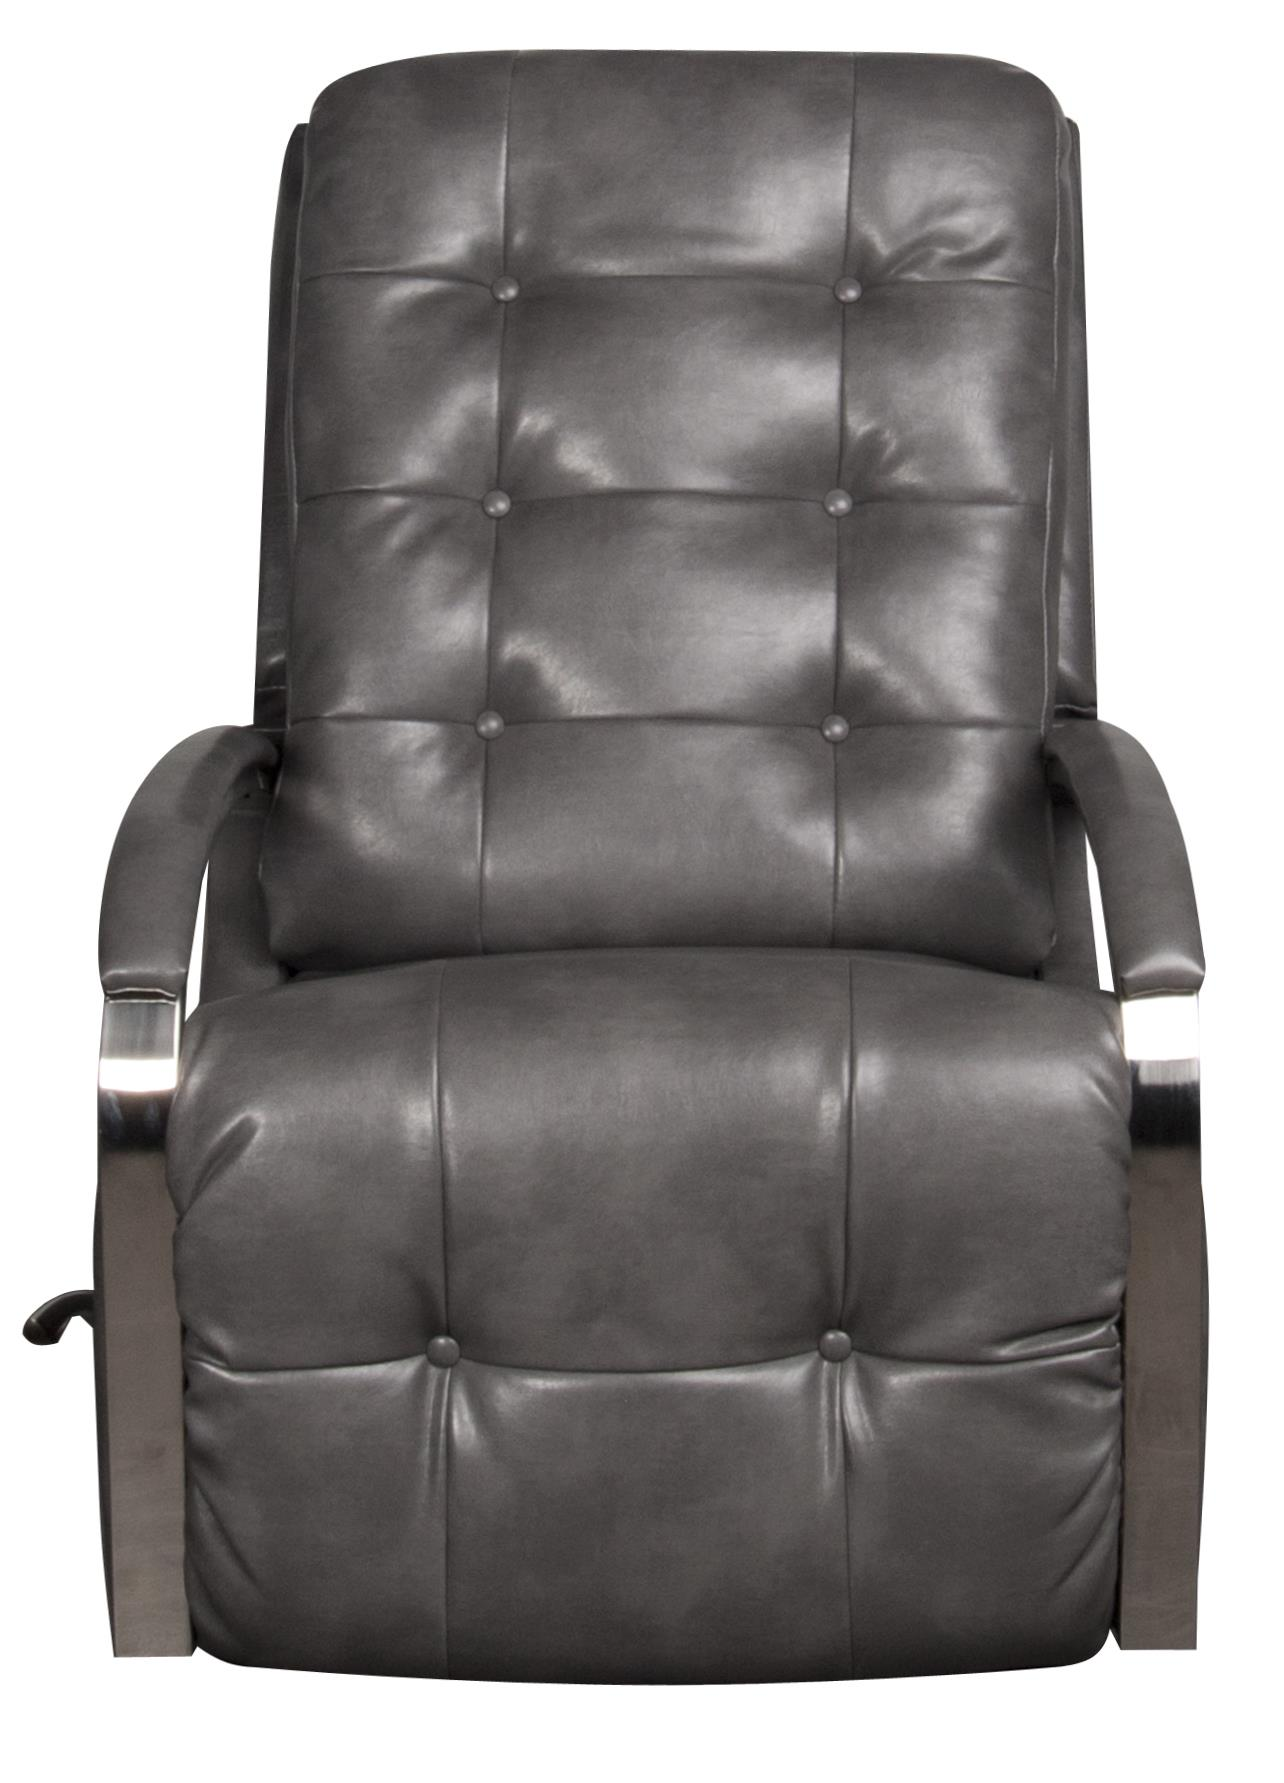 La-Z-Boy Impulse Impulse Rocker Recliner - Item Number: 705229177